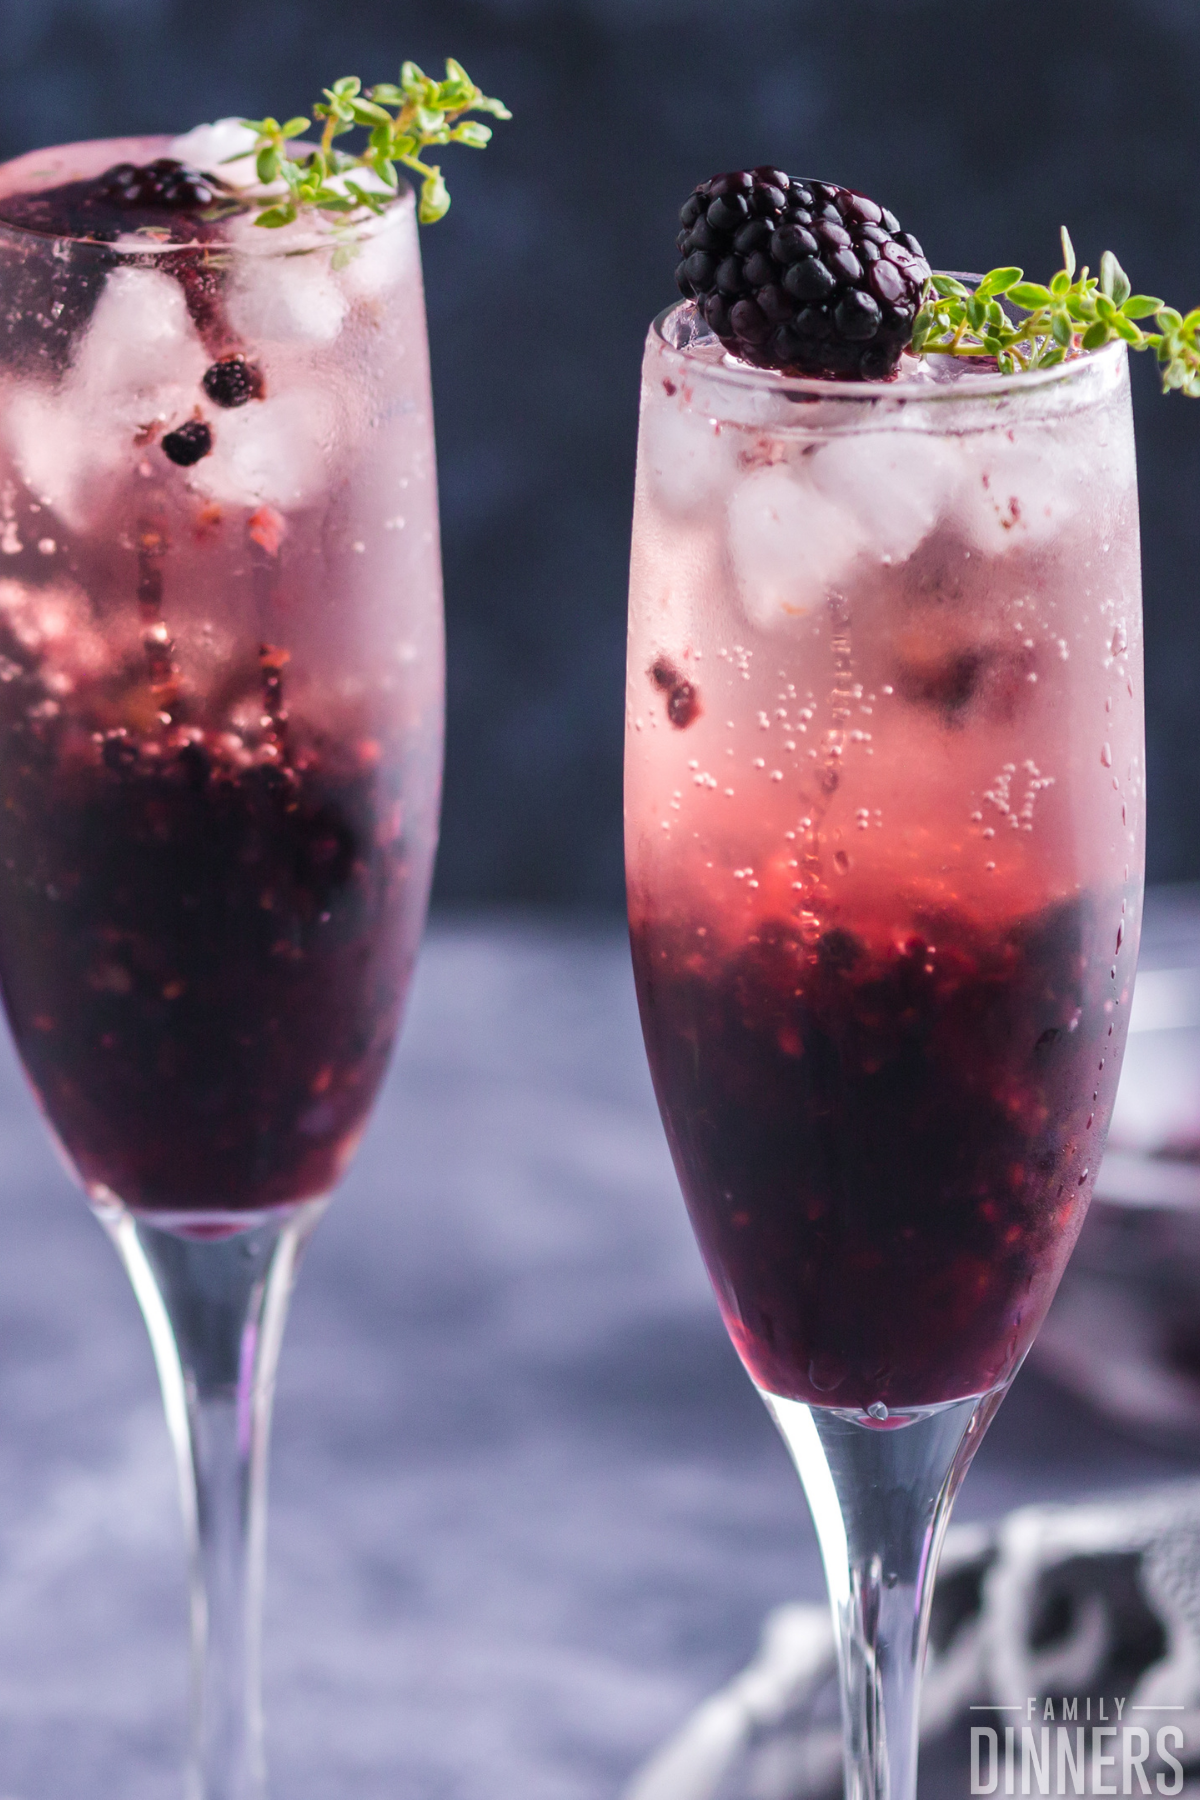 photo of two champagne glasses filled with blackberry cocktail that's dark purple on bottom and lighter pink on top.